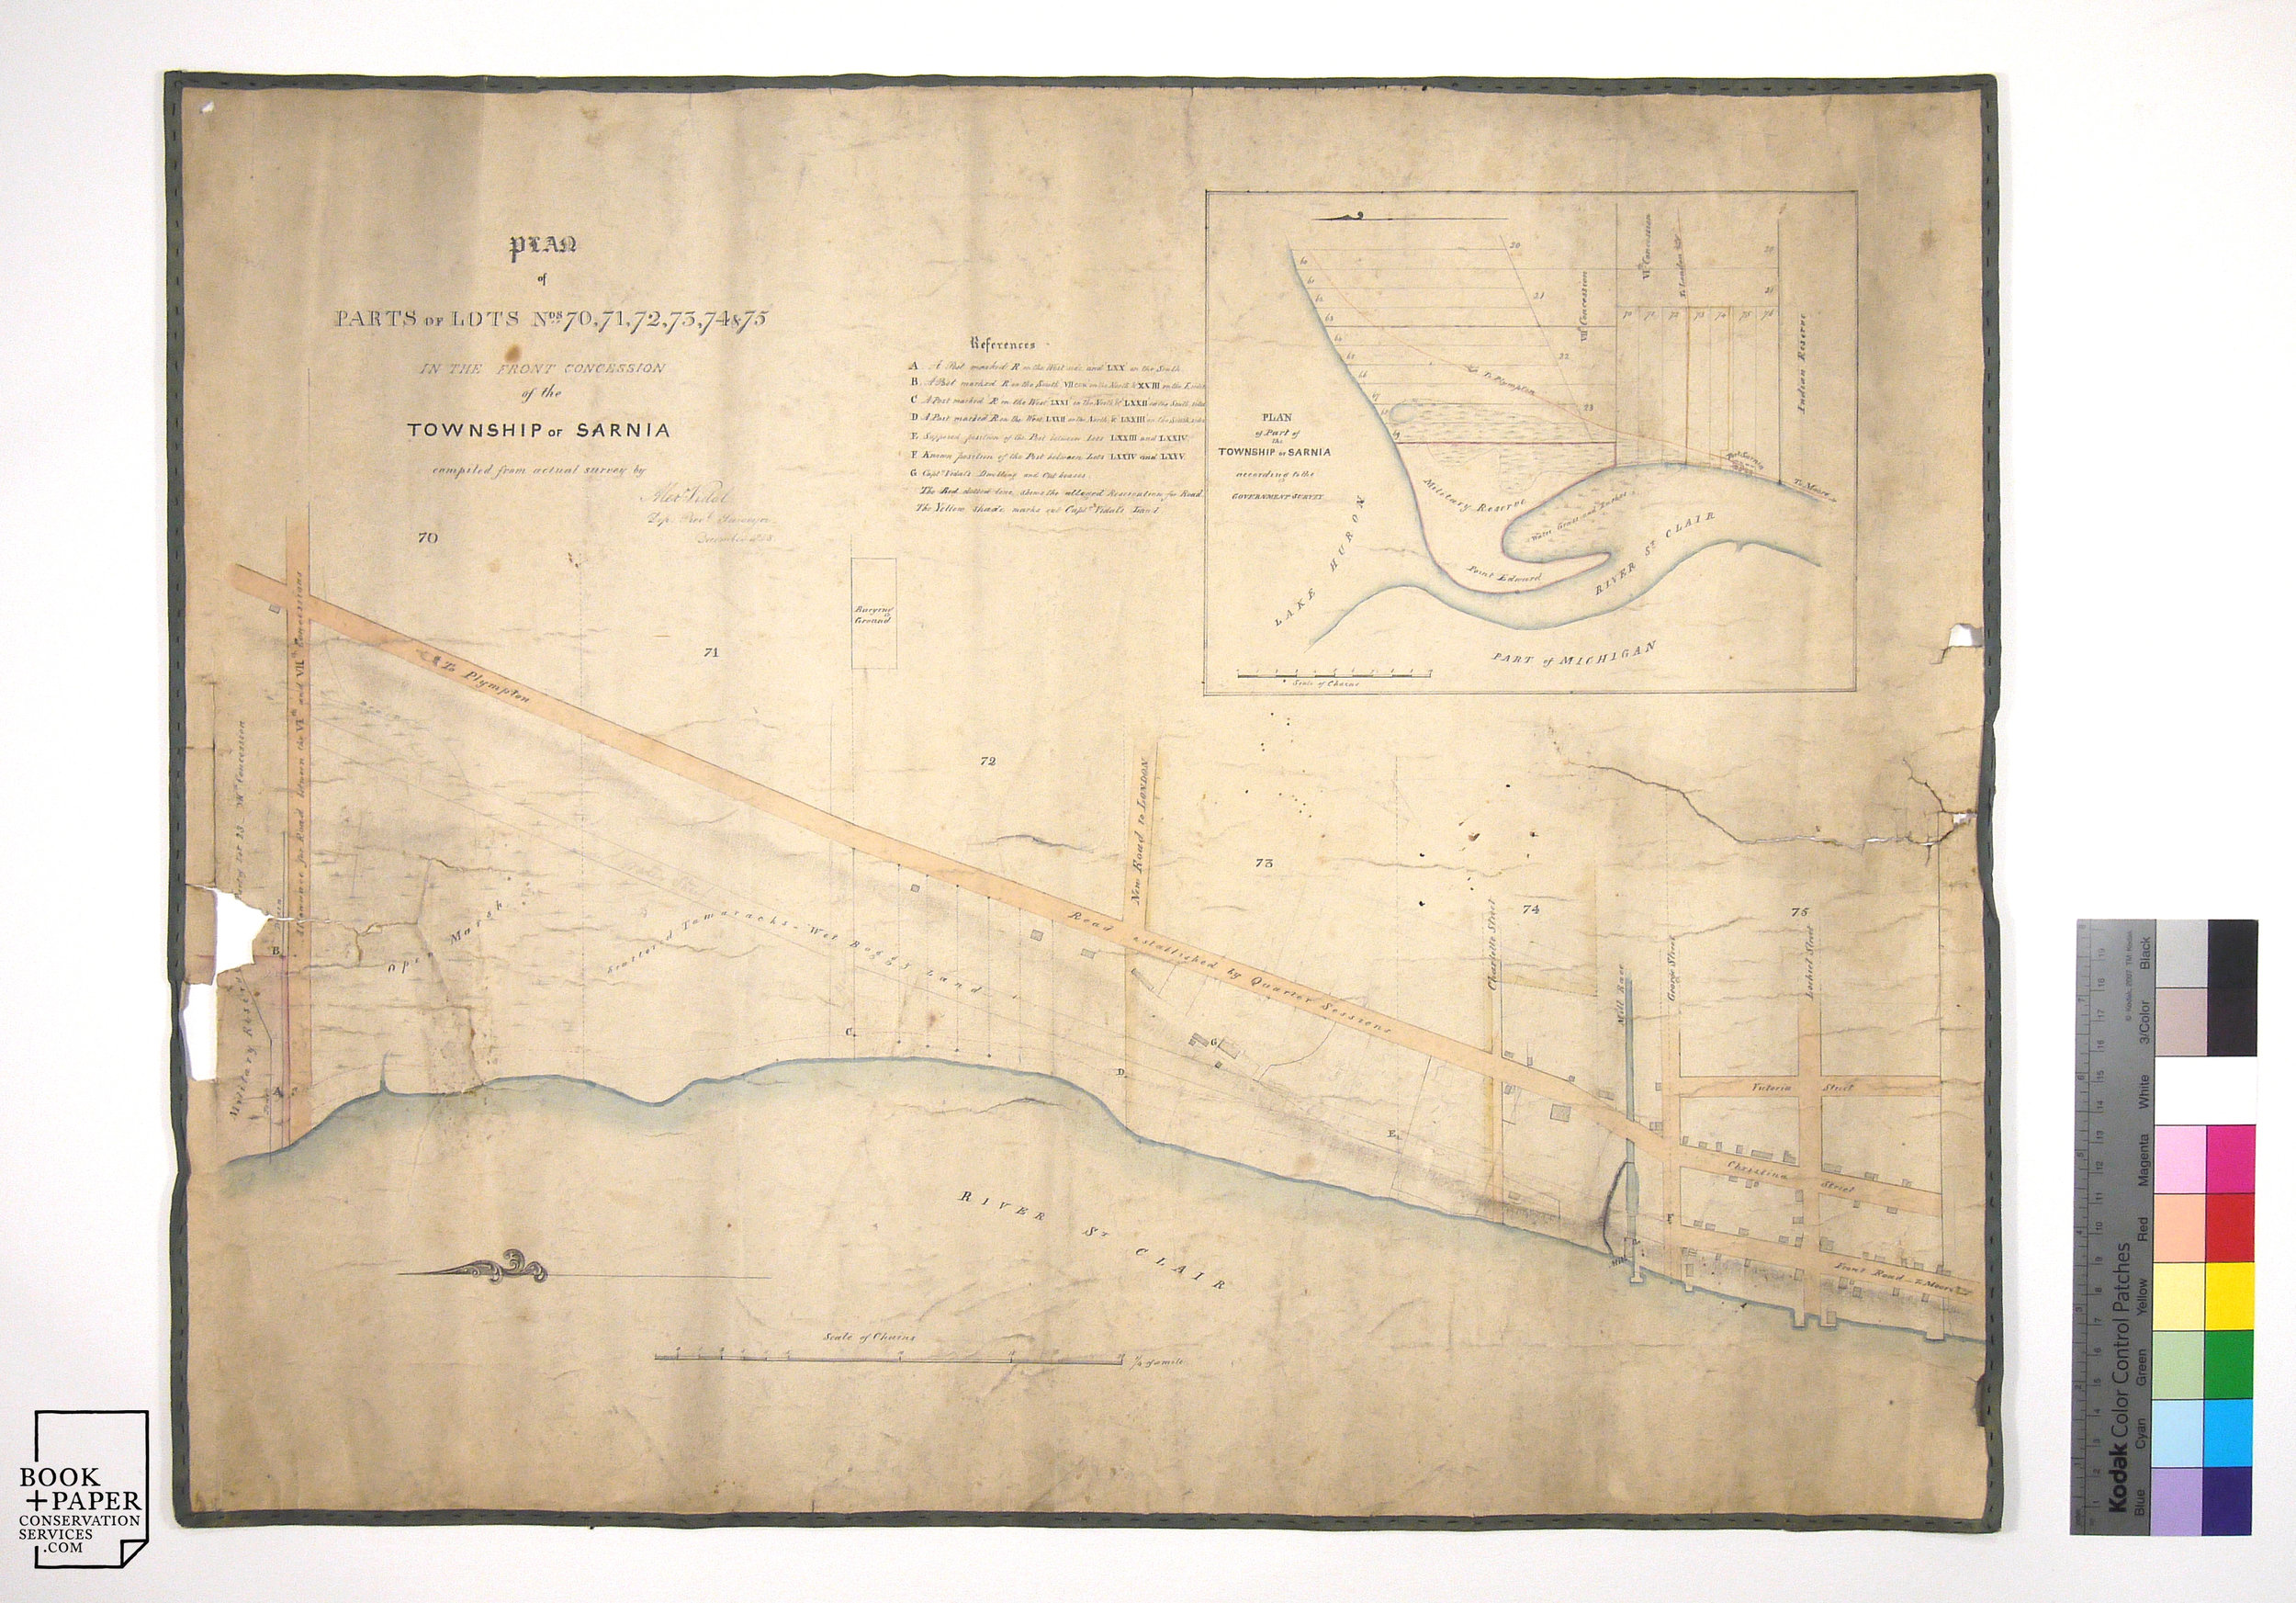 1848 Map of Sarnia, Ontario, Canada. Before conservation treatment, the map suffers surface dirt, tears and losses, as well as previous repairs with damaging adhesive tape on the verso.